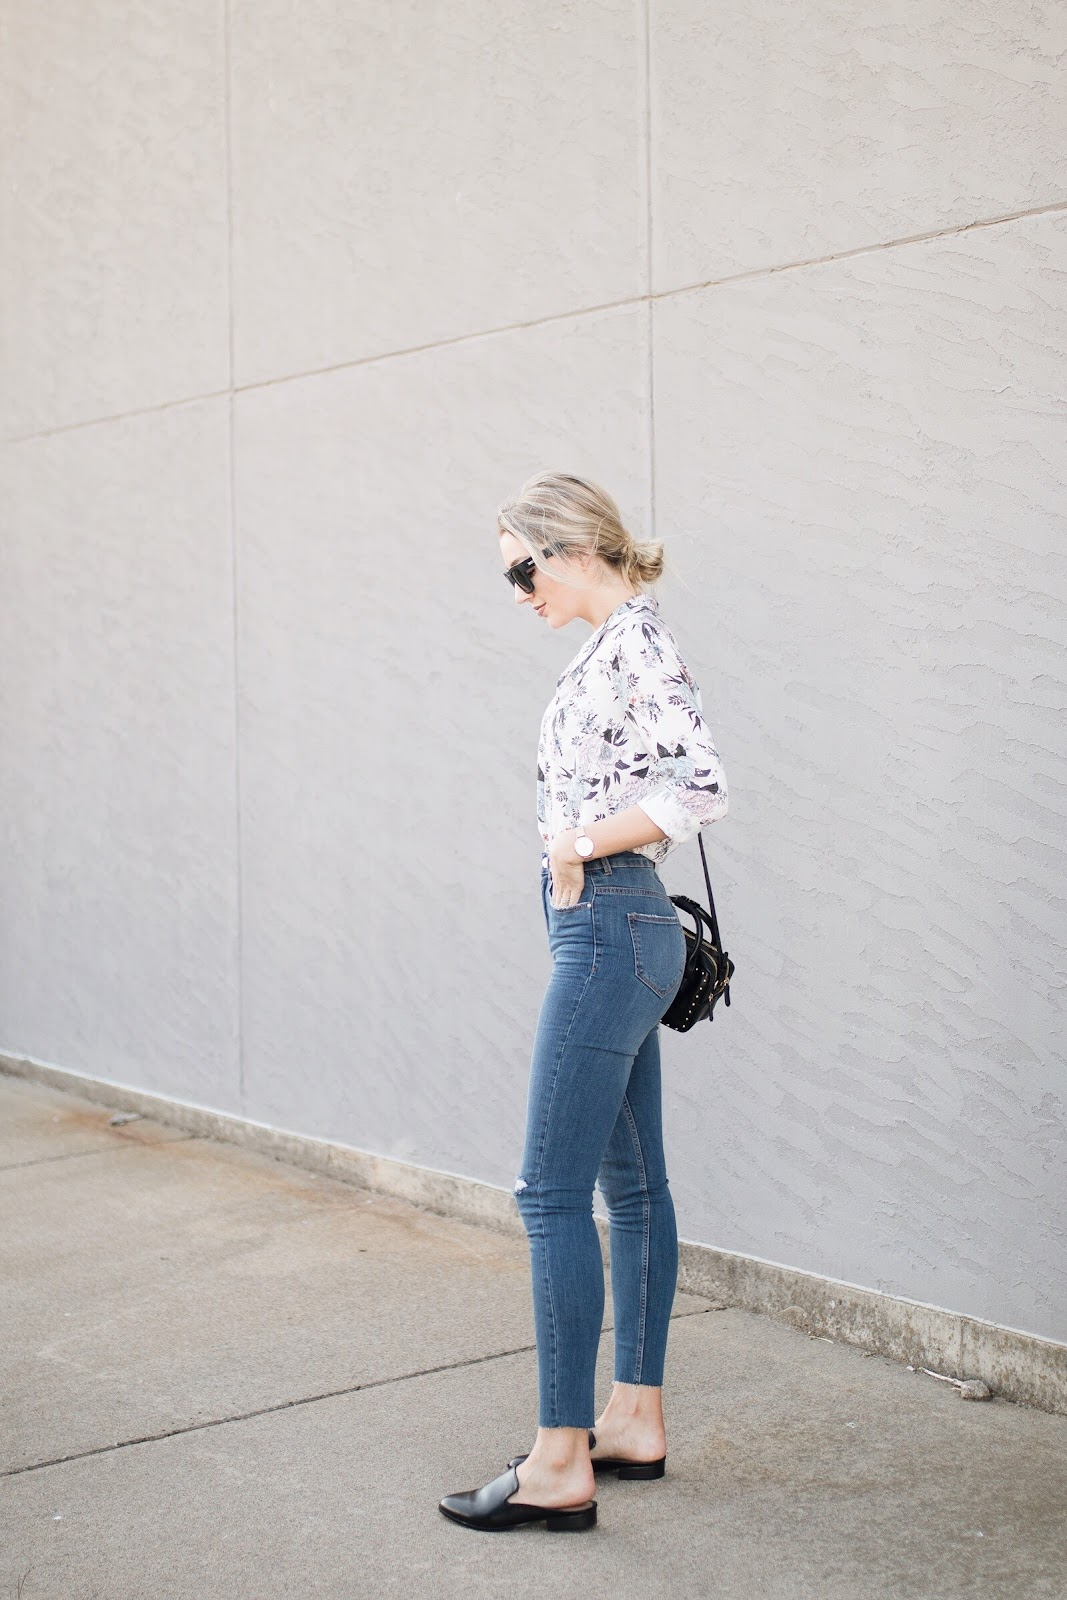 high-waisted skinny jeans with a floral top